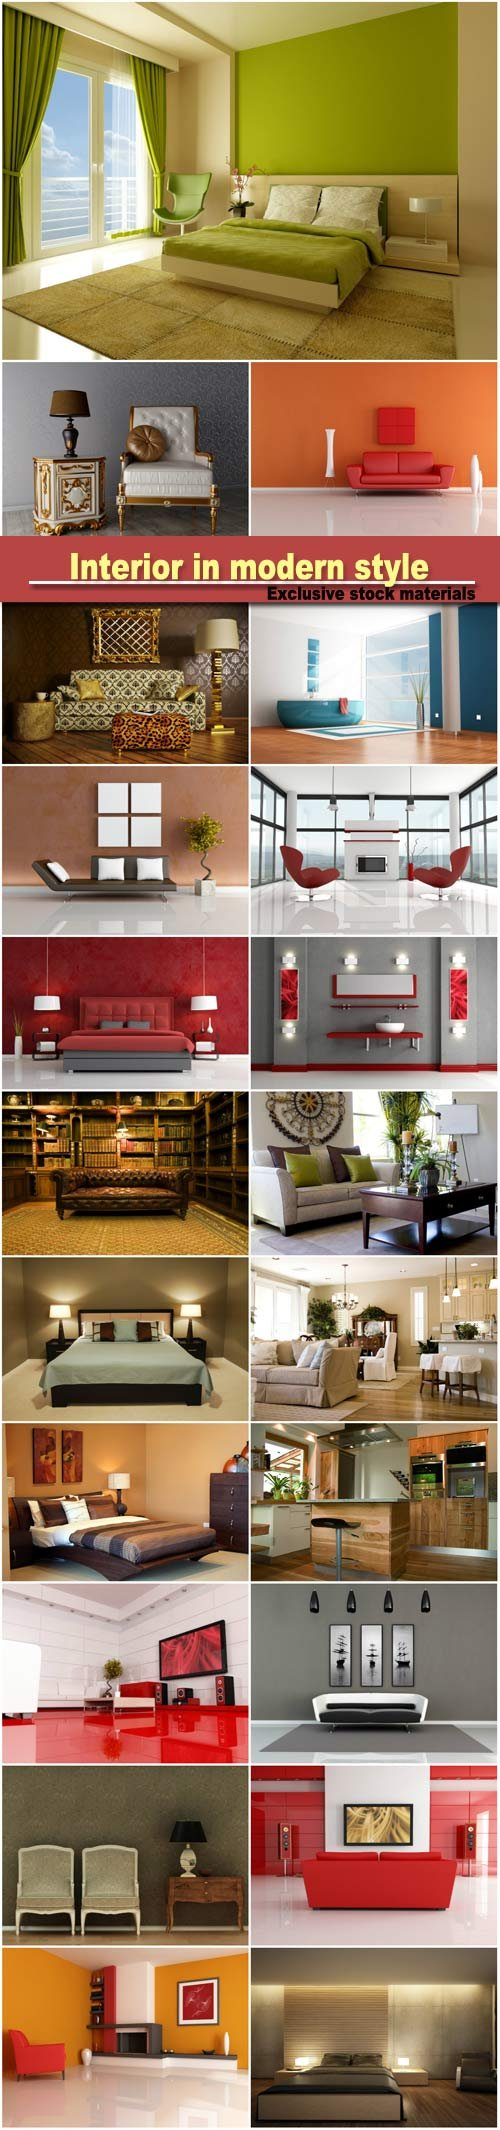 Interior in modern style, armchairs, sofas, bedroom